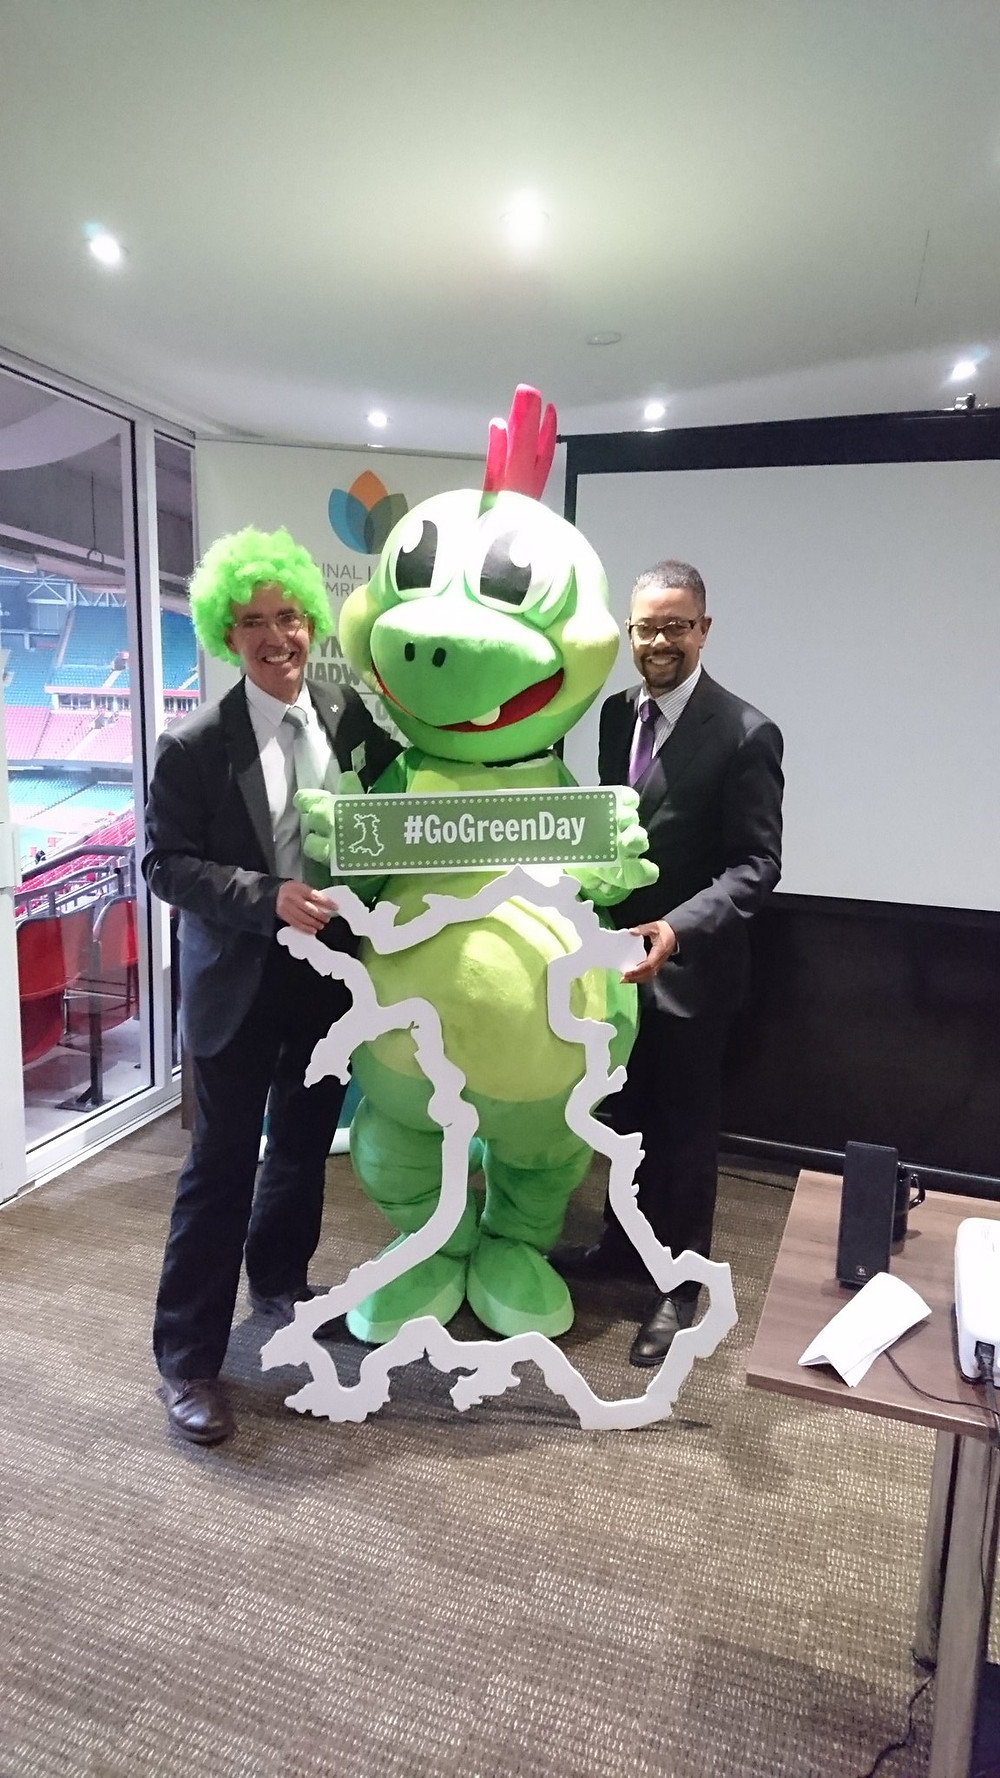 Launch of Go Green Day with Vaughan Gethin Cabinet Secretary for Health Wellbeing and Sport